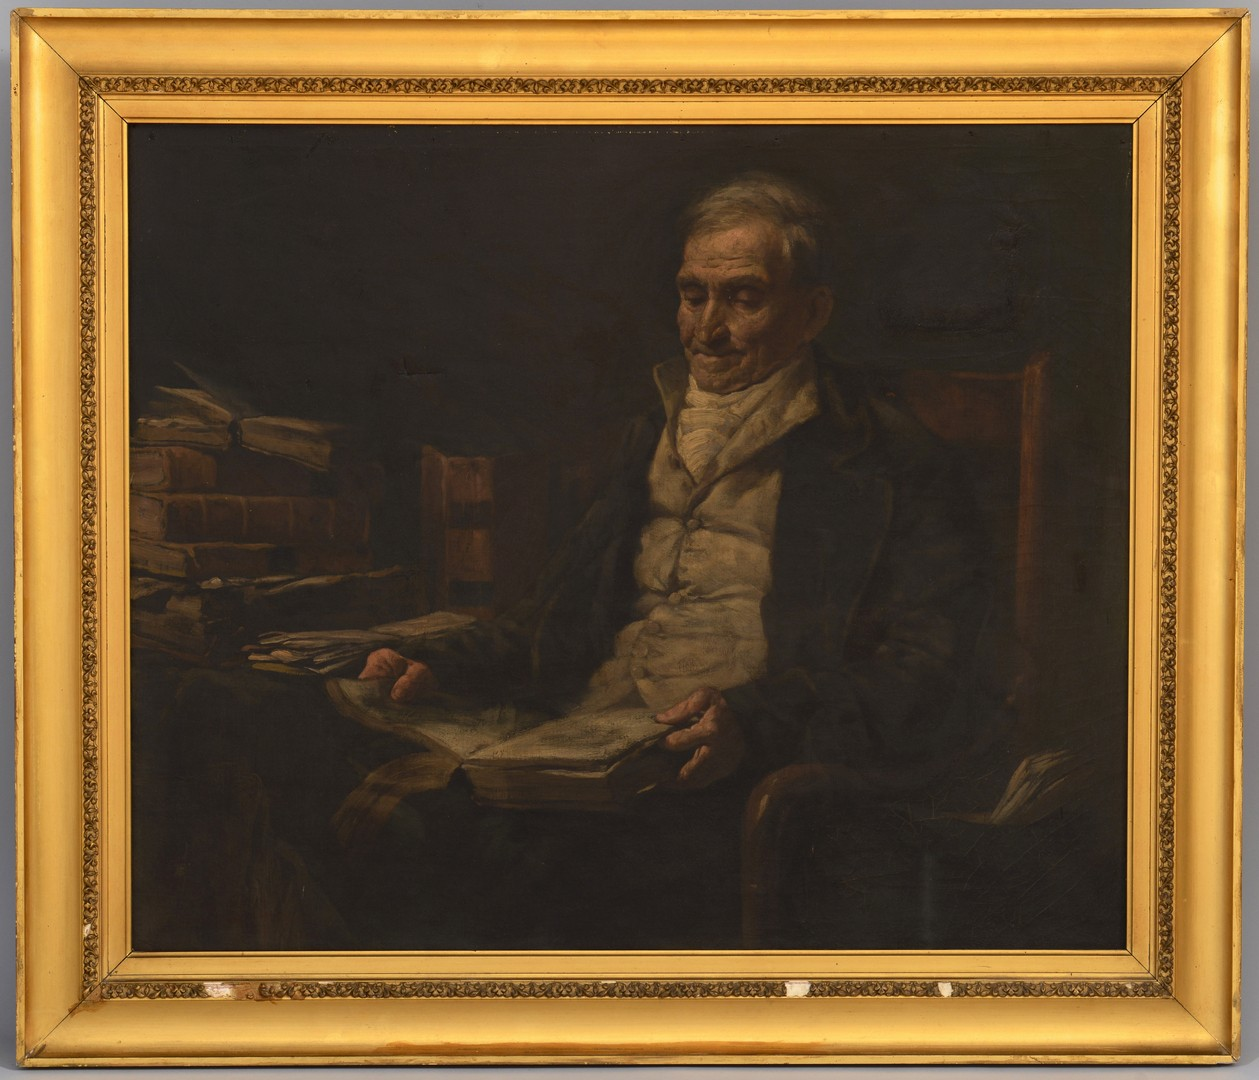 Lot 243: Interior Scene of Gentleman in Library Oil